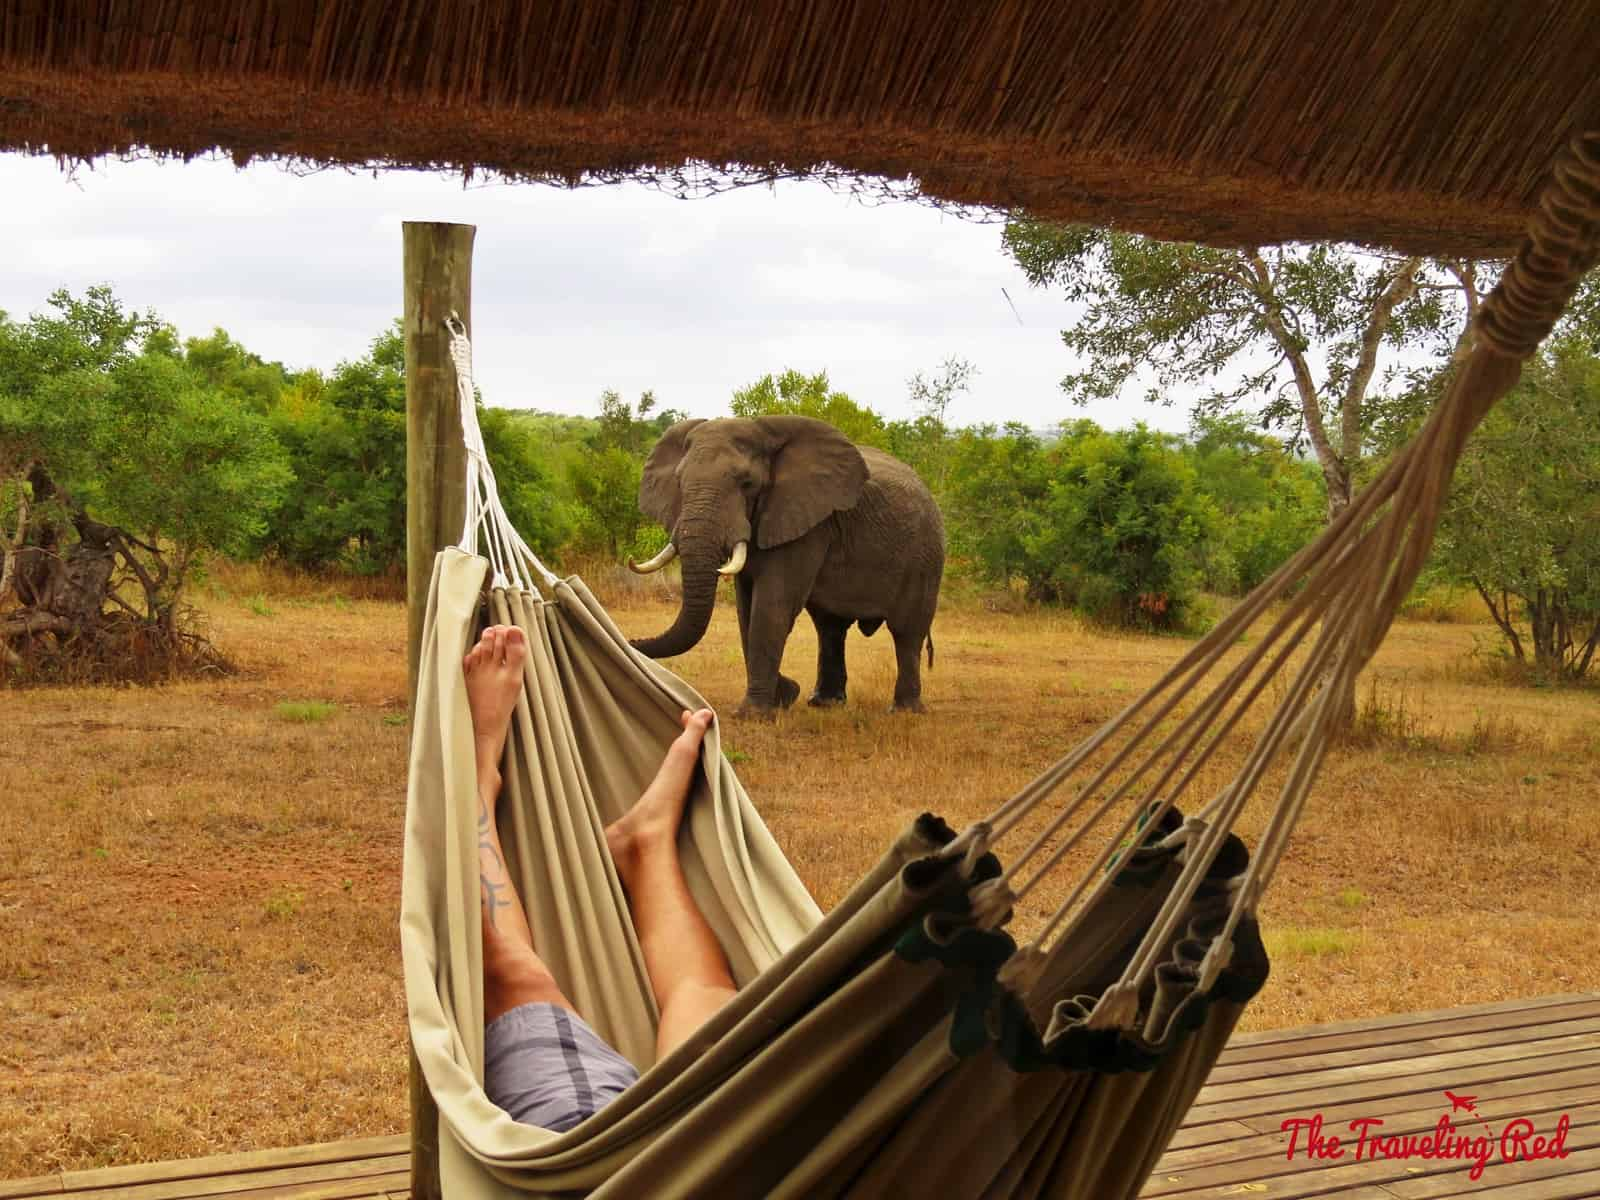 An elephant passing by our room